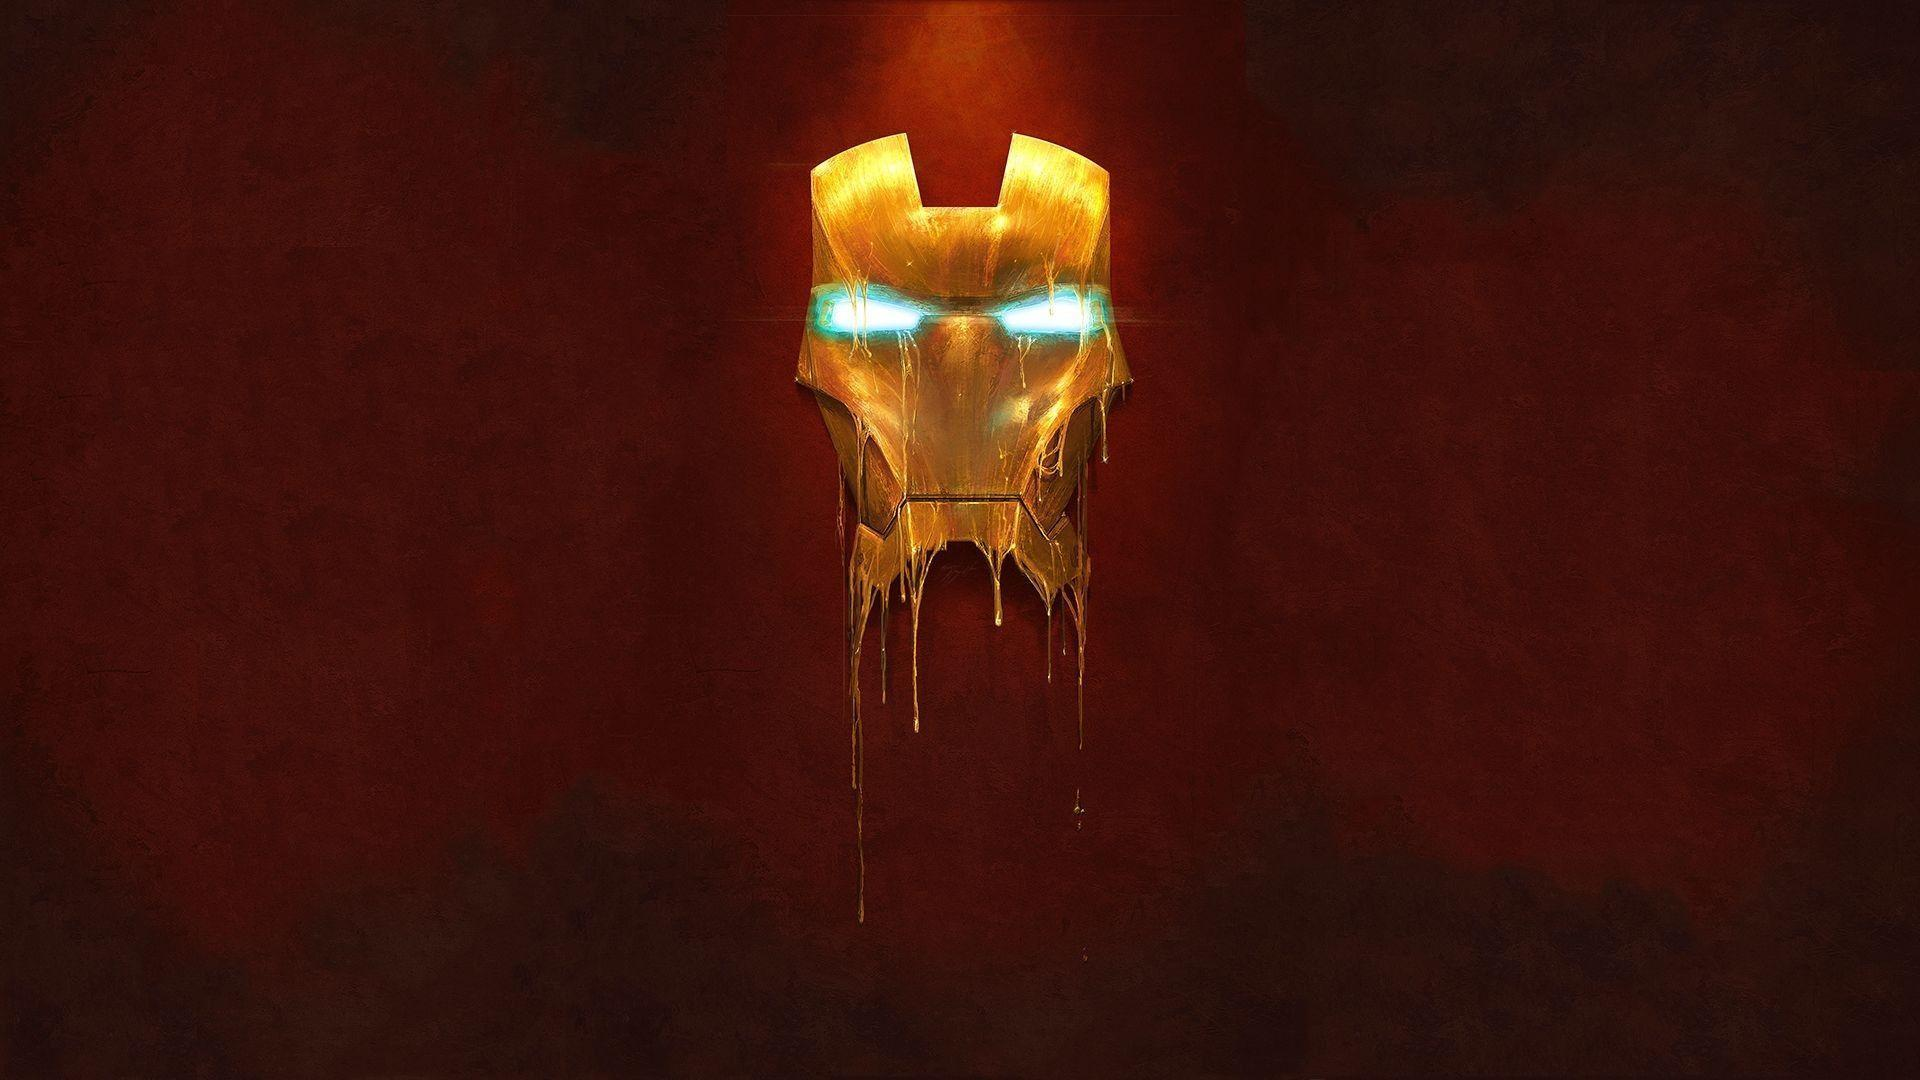 Image - Ironman-3-Hd-Wallpaper-cool-face.jpg - Star Warfare Wiki